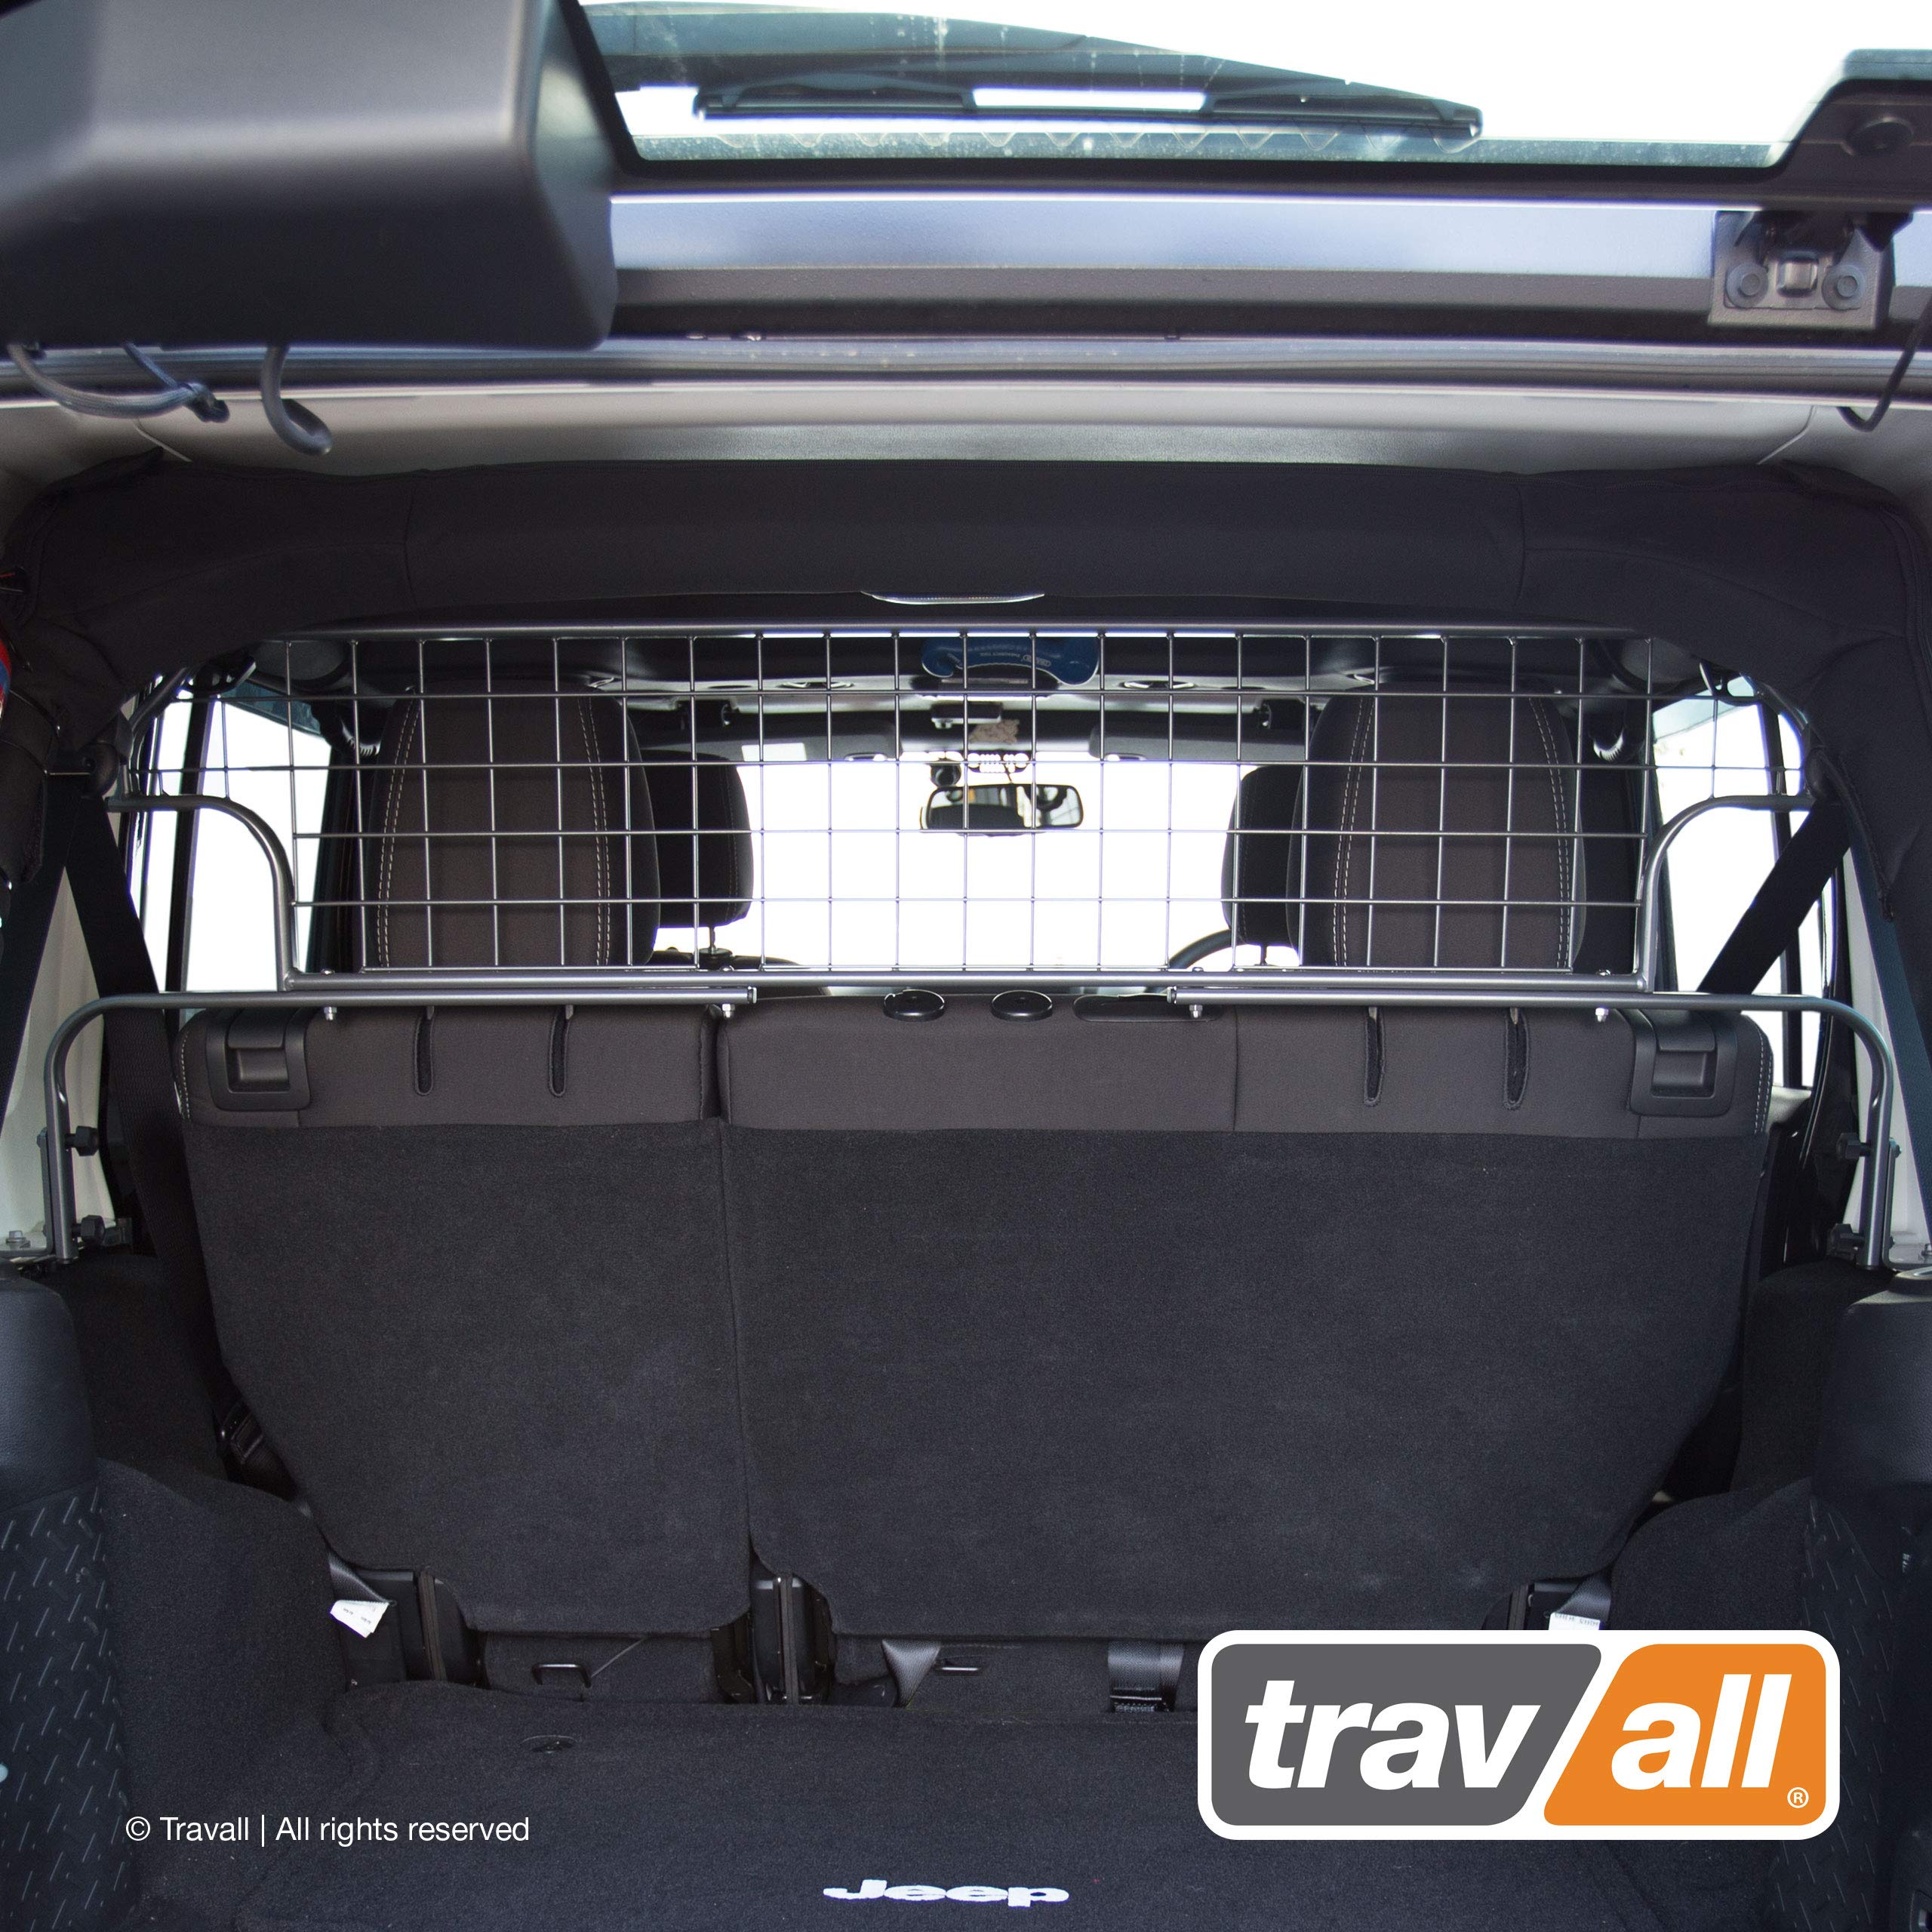 Travall Guard Compatible with Jeep Wrangler Unlimited (2006-2018) TDG1536 - Rattle-Free Steel Pet Barrier by Travall